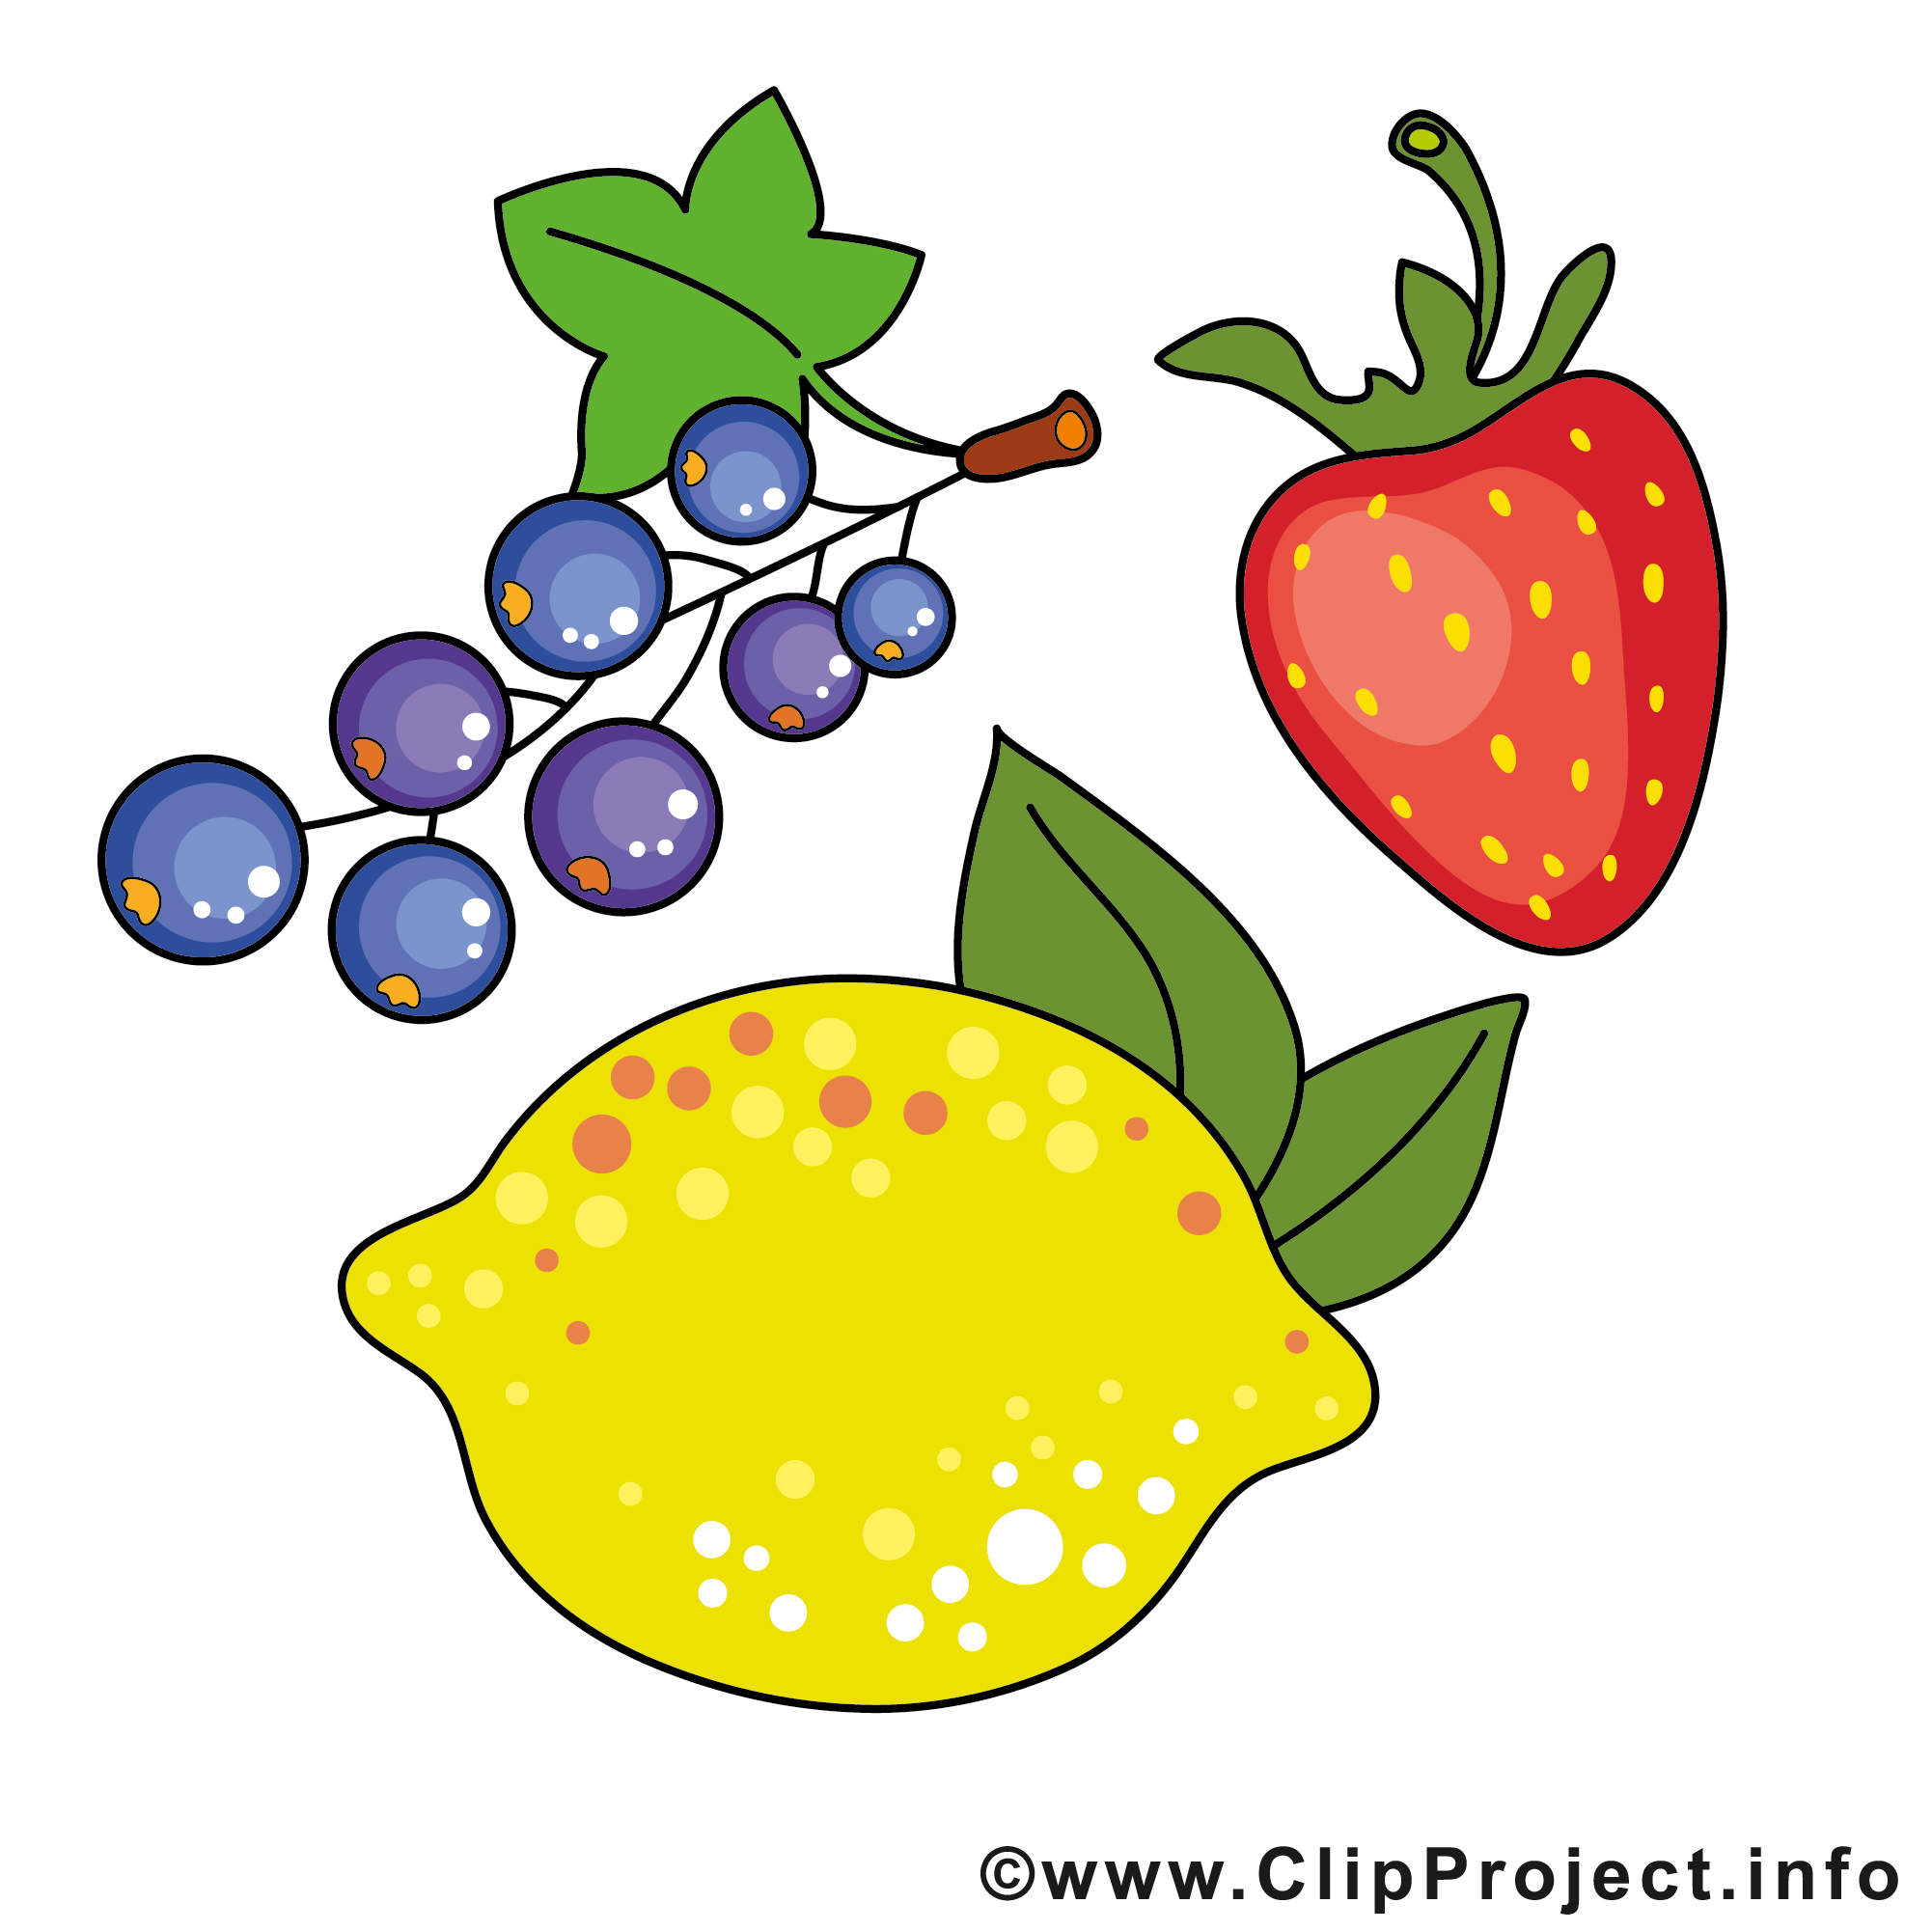 Obstkiste Clipart Obstkiste Clipart 20 Free Cliparts Download Images On Clipground